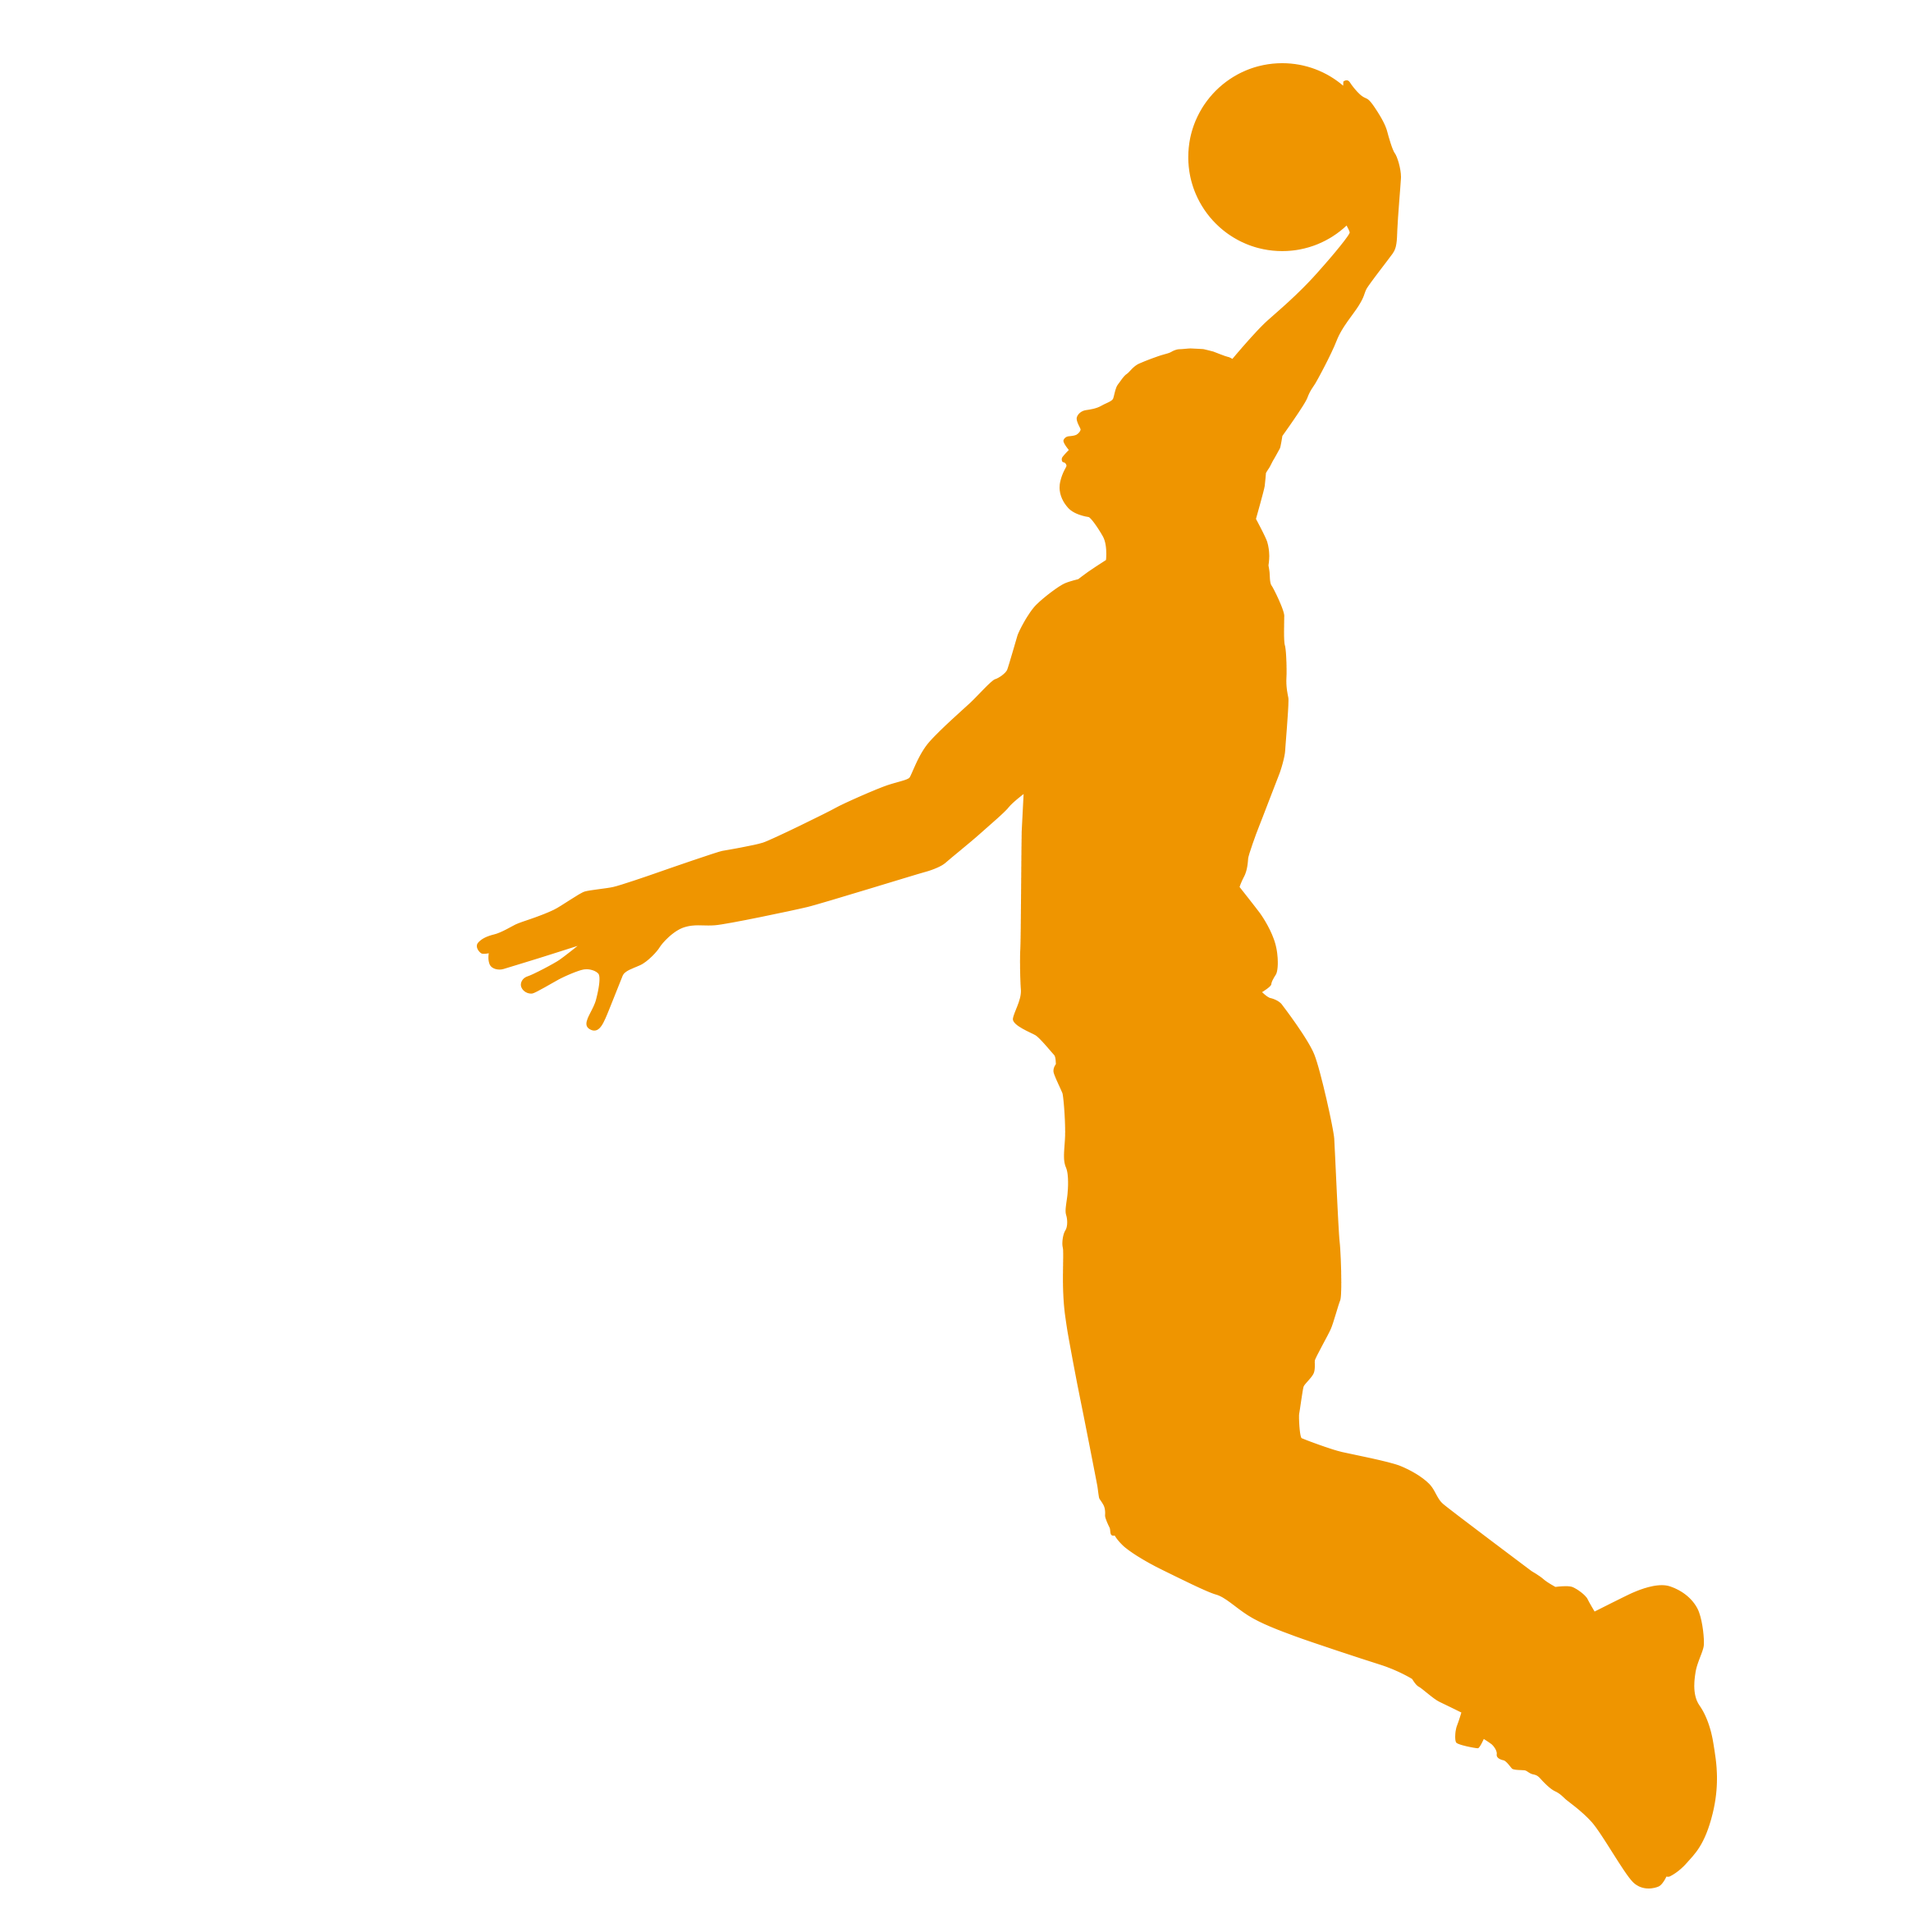 Basketball dunking clipart graphic free library Slam Dunk Silhouette at GetDrawings.com | Free for personal use Slam ... graphic free library